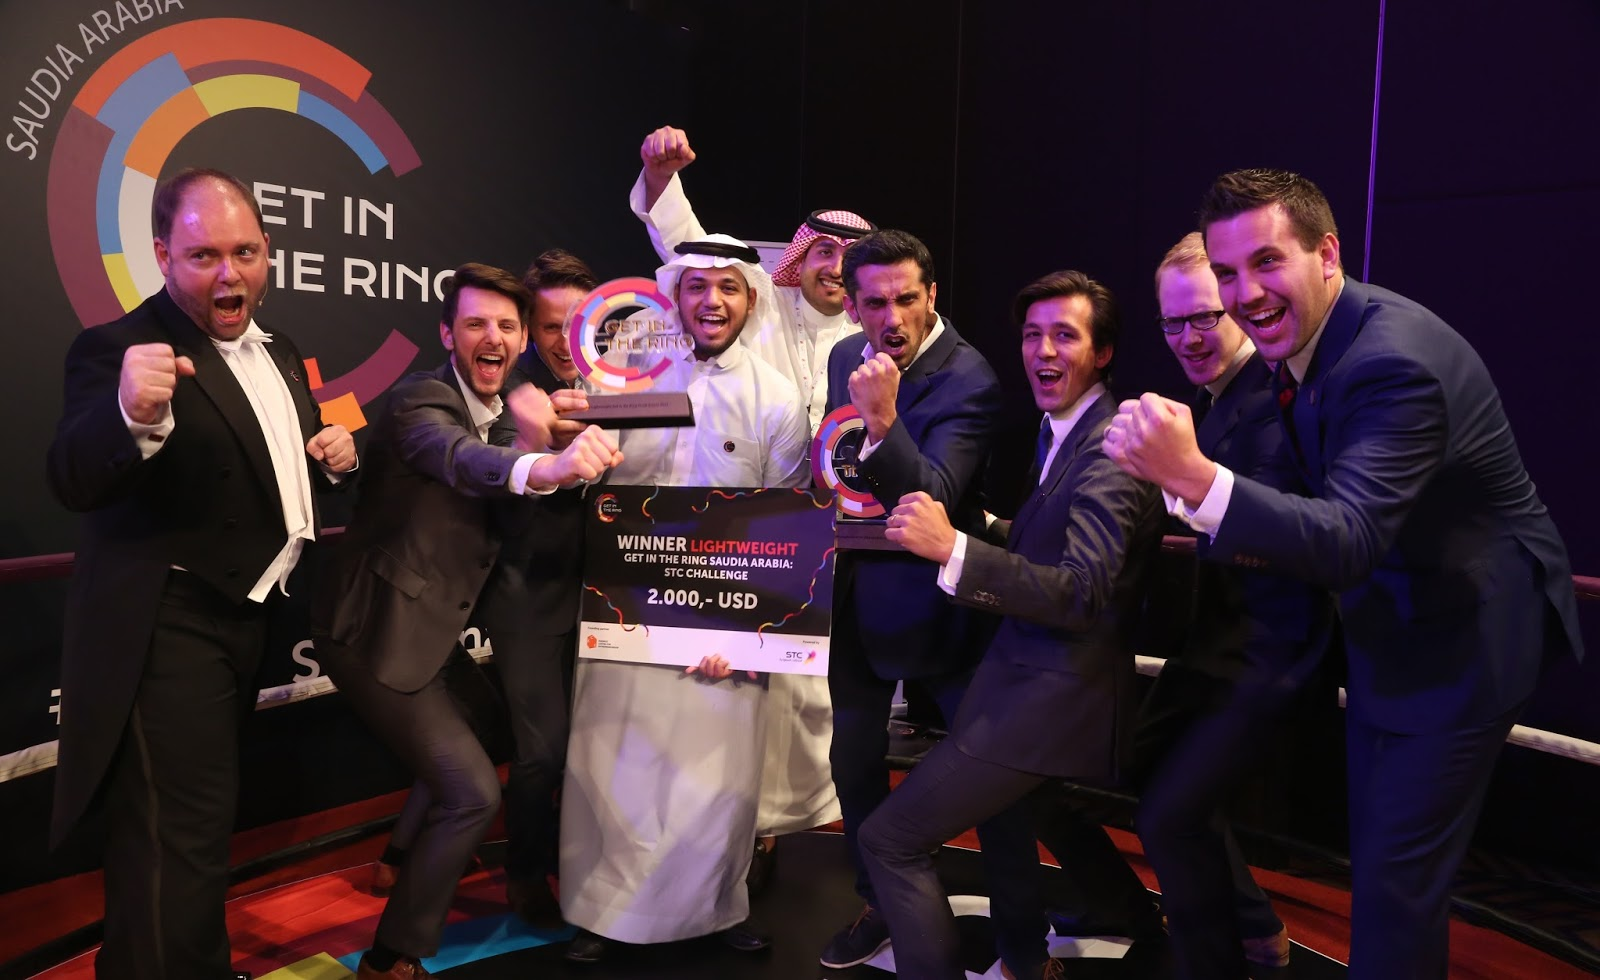 GITR KSA 2015 - Winners Vanoman and Myndplay with team.JPG